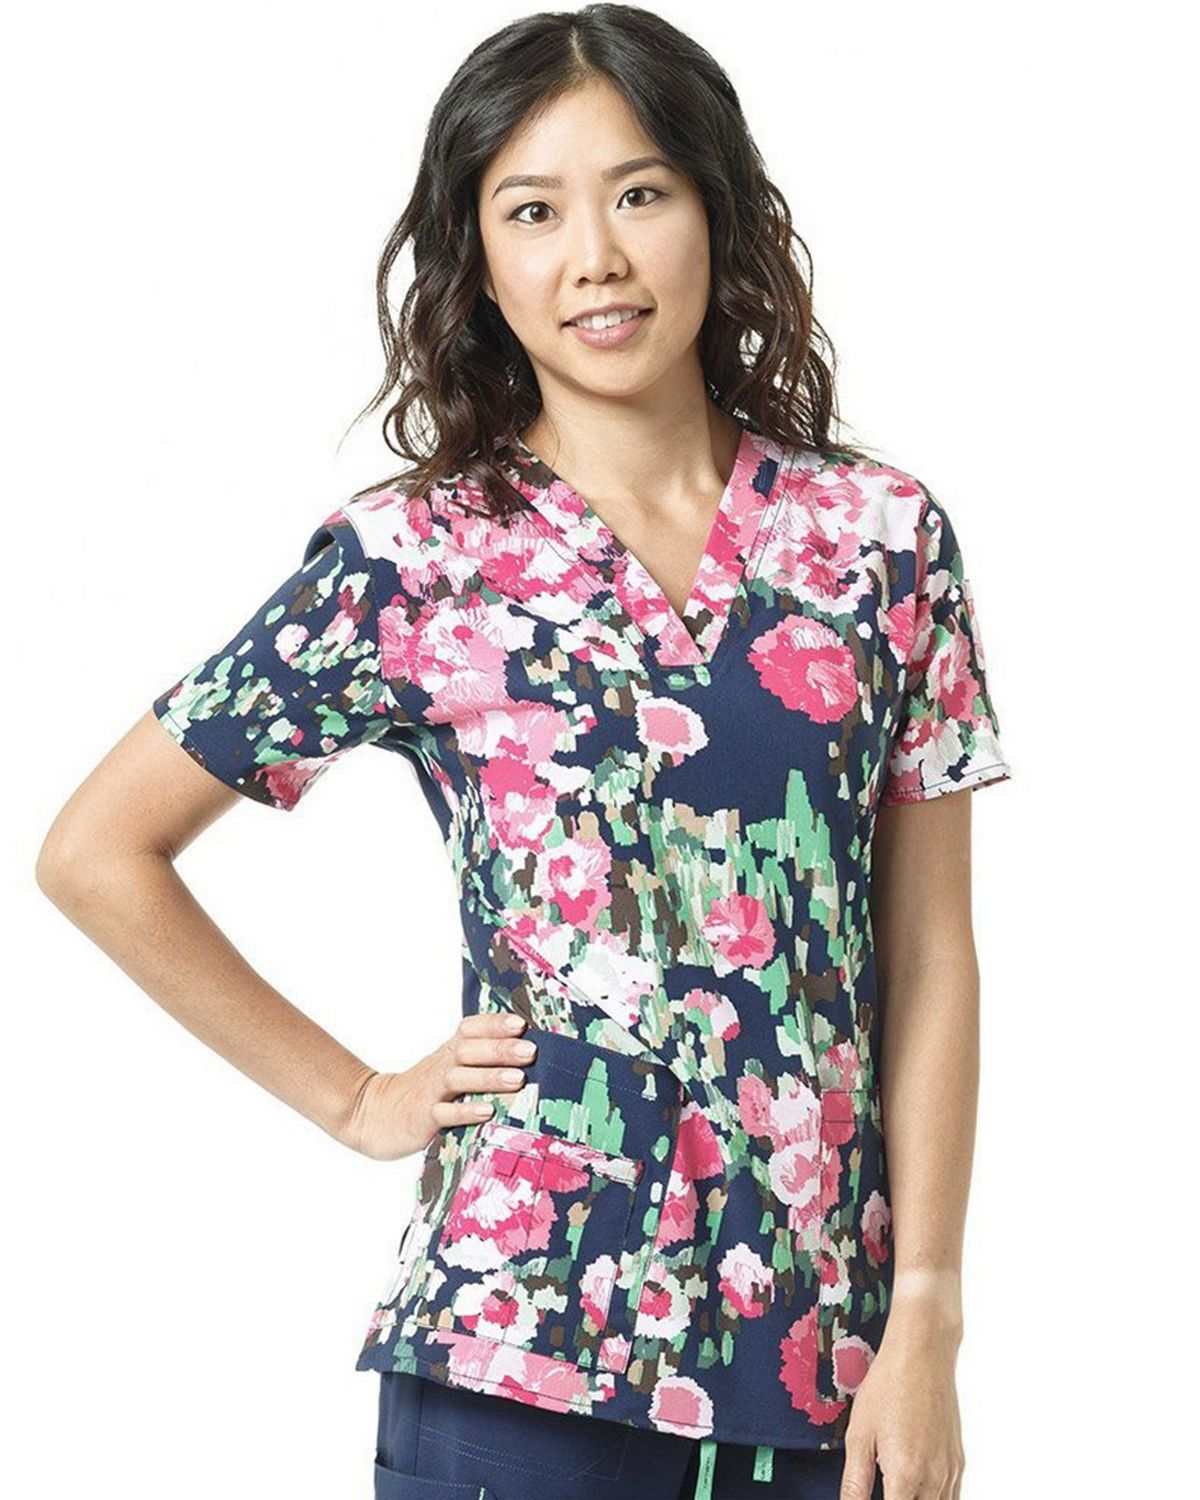 Carhartt C12114 Womens Print V-Neck Top - Free Feather Hibiscus - LG C12114